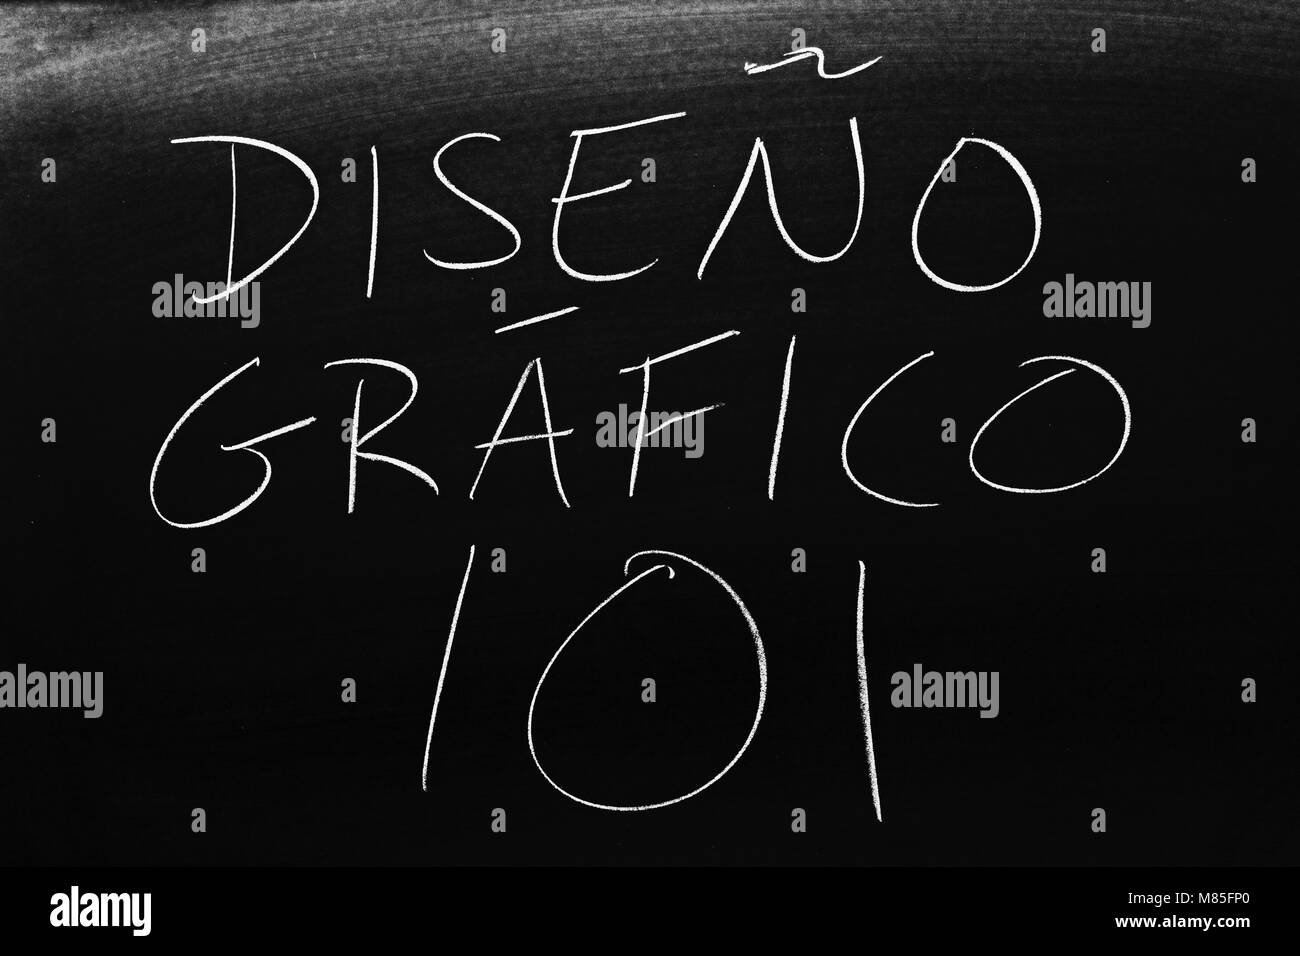 The words Diseño Gráfico 101 on a blackboard in chalk - Stock Image